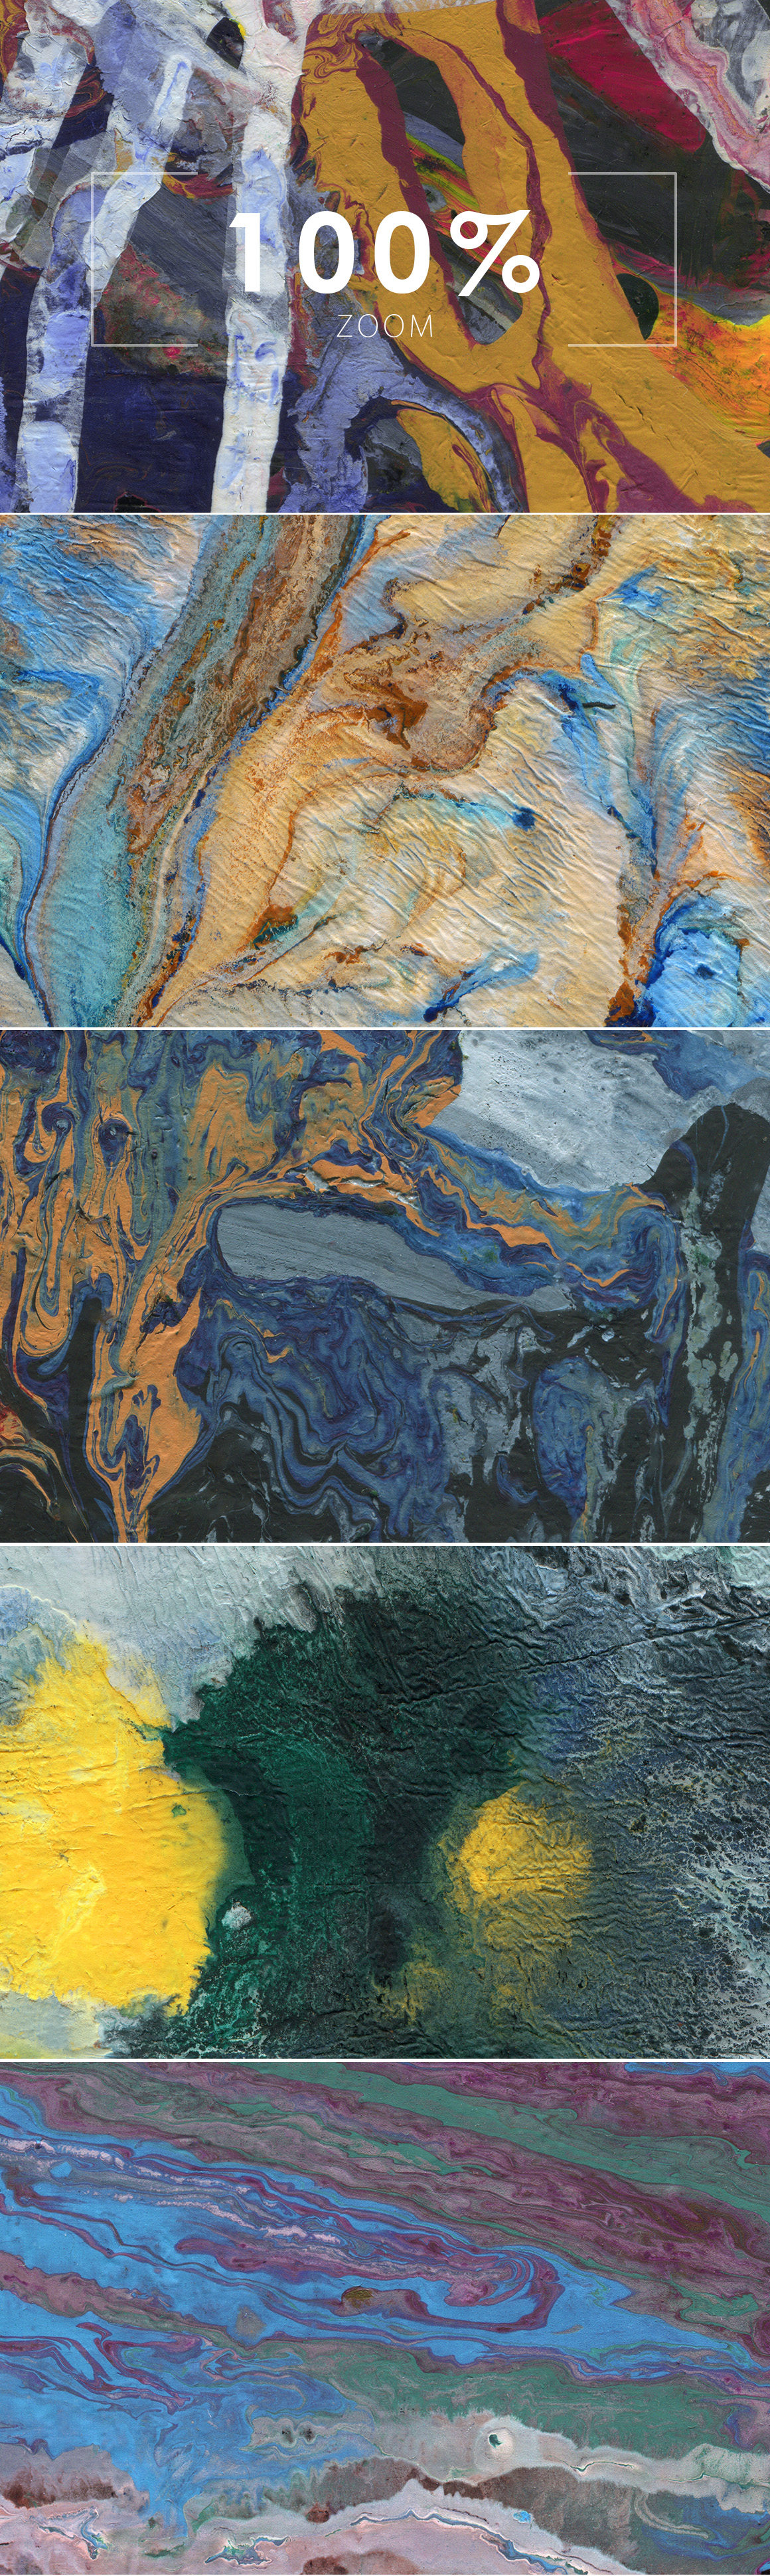 Abstract Paint Backgrounds Vol.2 example image 4